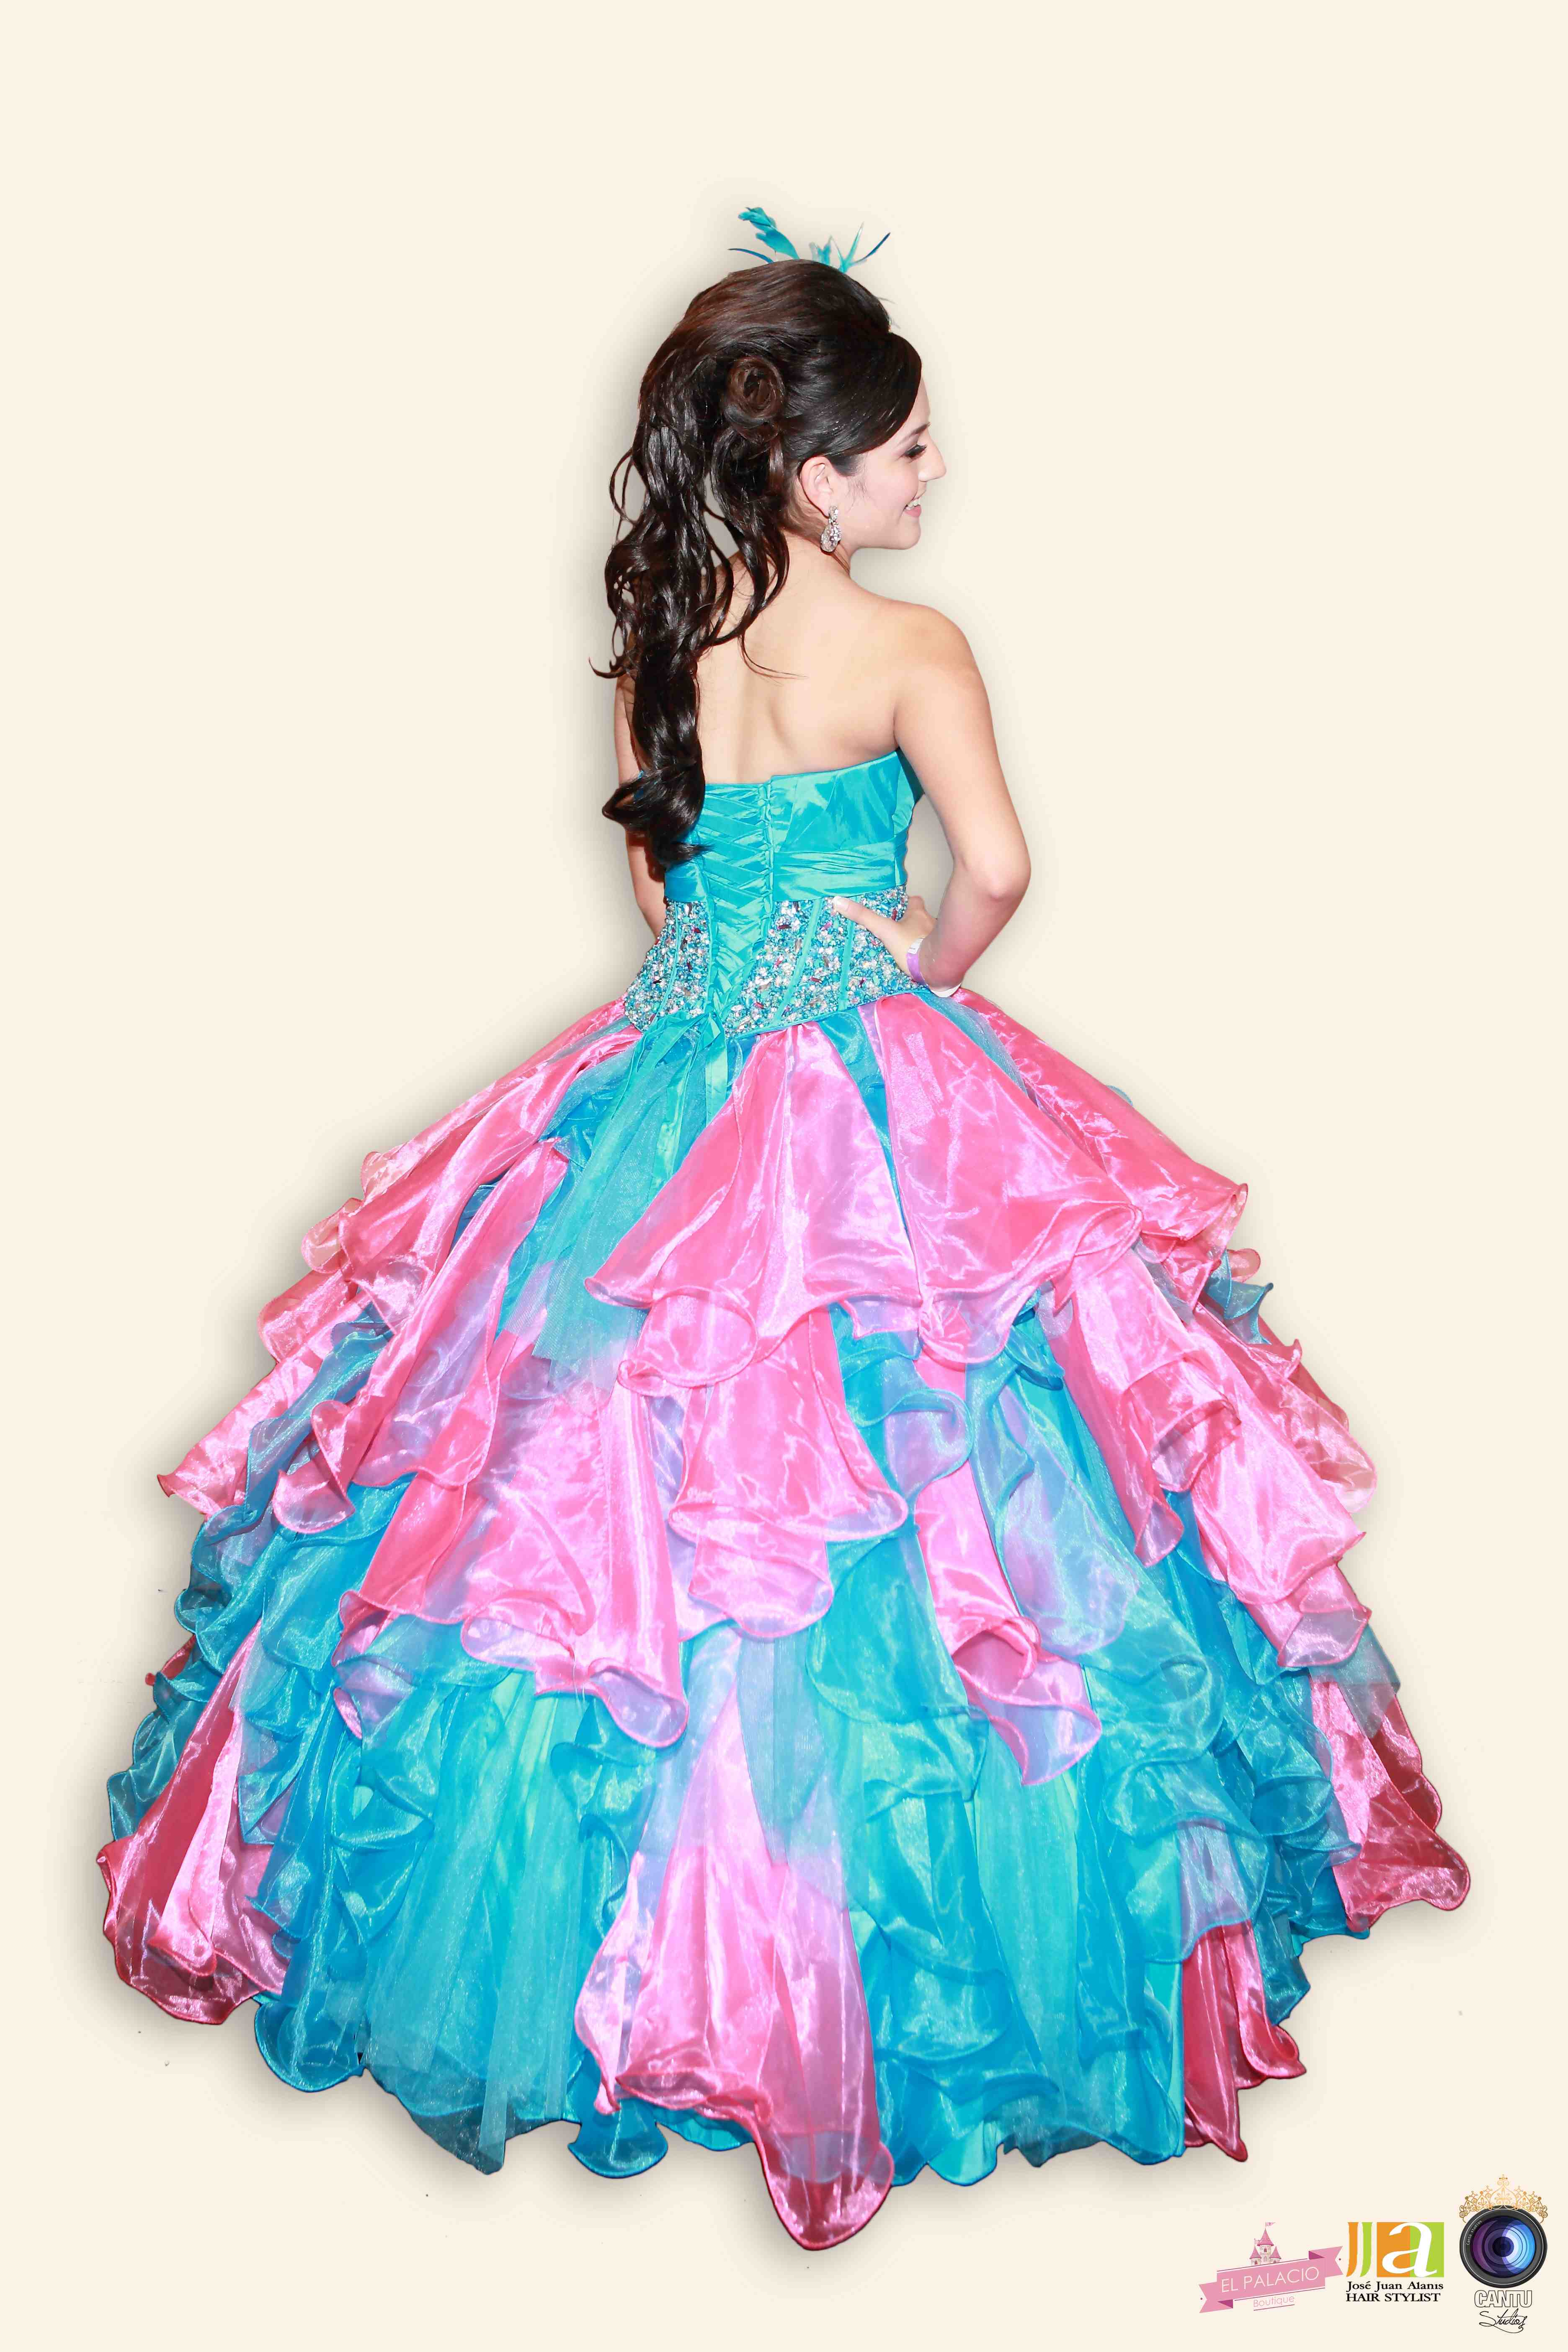 El Palacio Boutique Houston TX | Vestidos para Quinceanera y más ...